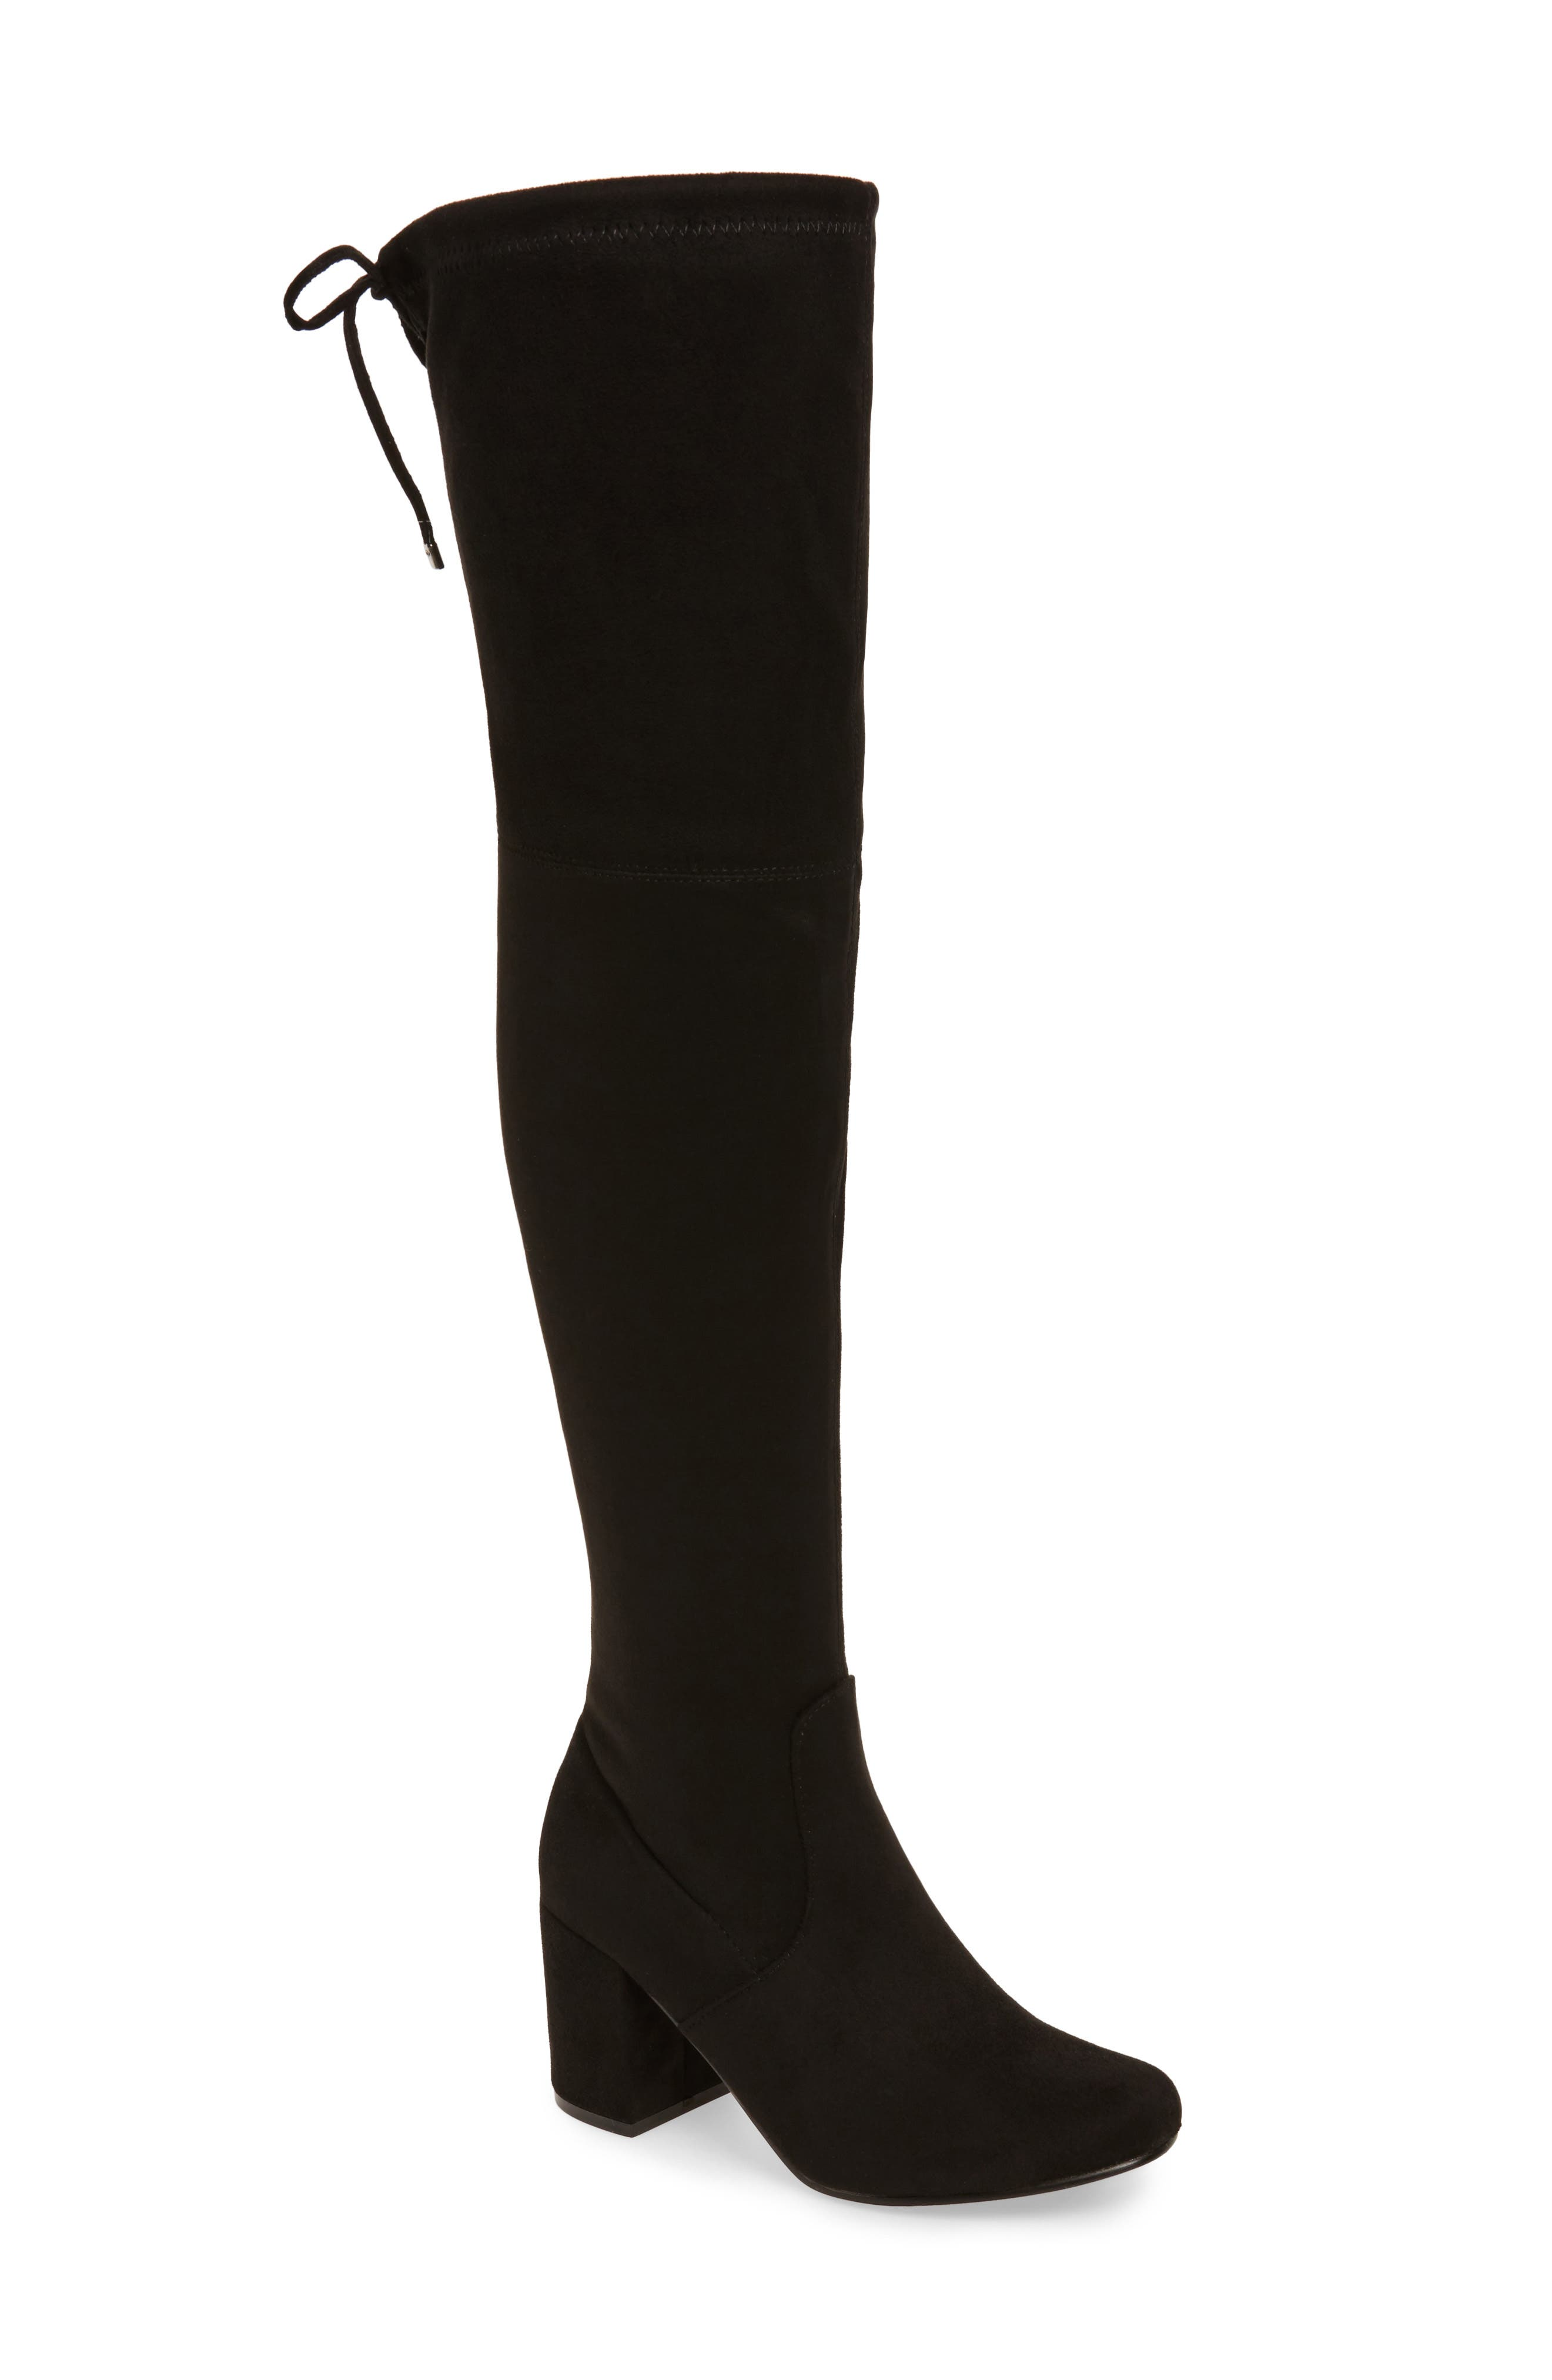 Heartbeat Over the Knee Boot,                             Main thumbnail 1, color,                             001